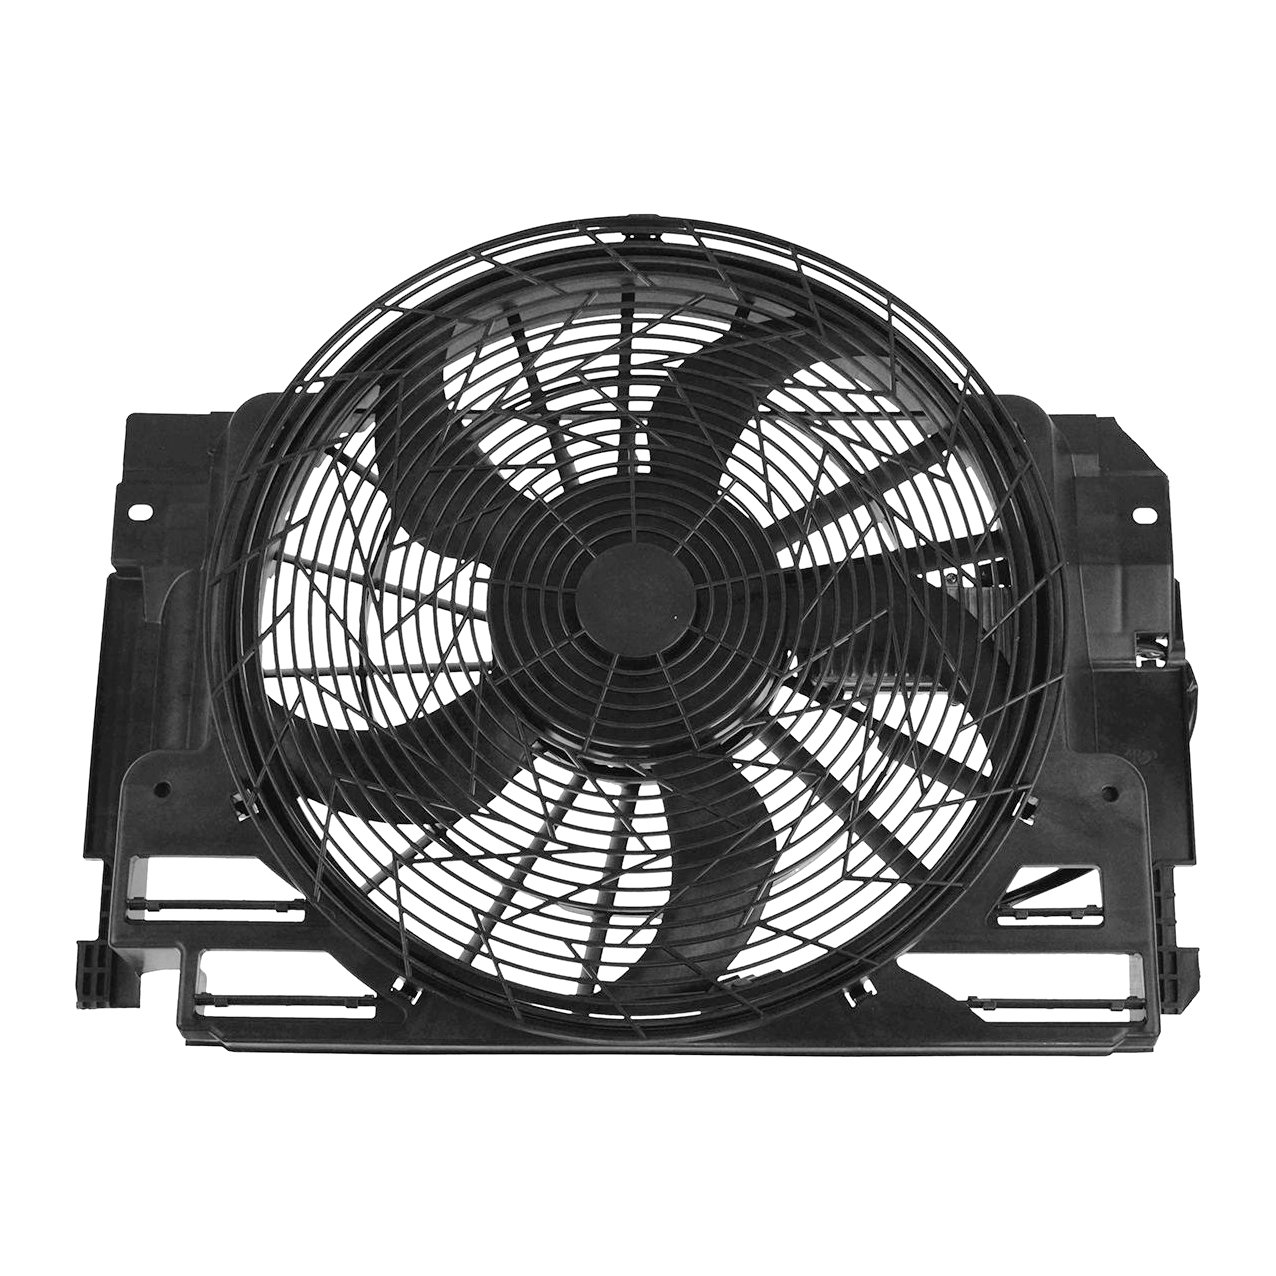 Condenser Radiator Cooling Fan Assembly For 2001-2006 BMW X5 Series BM3020102